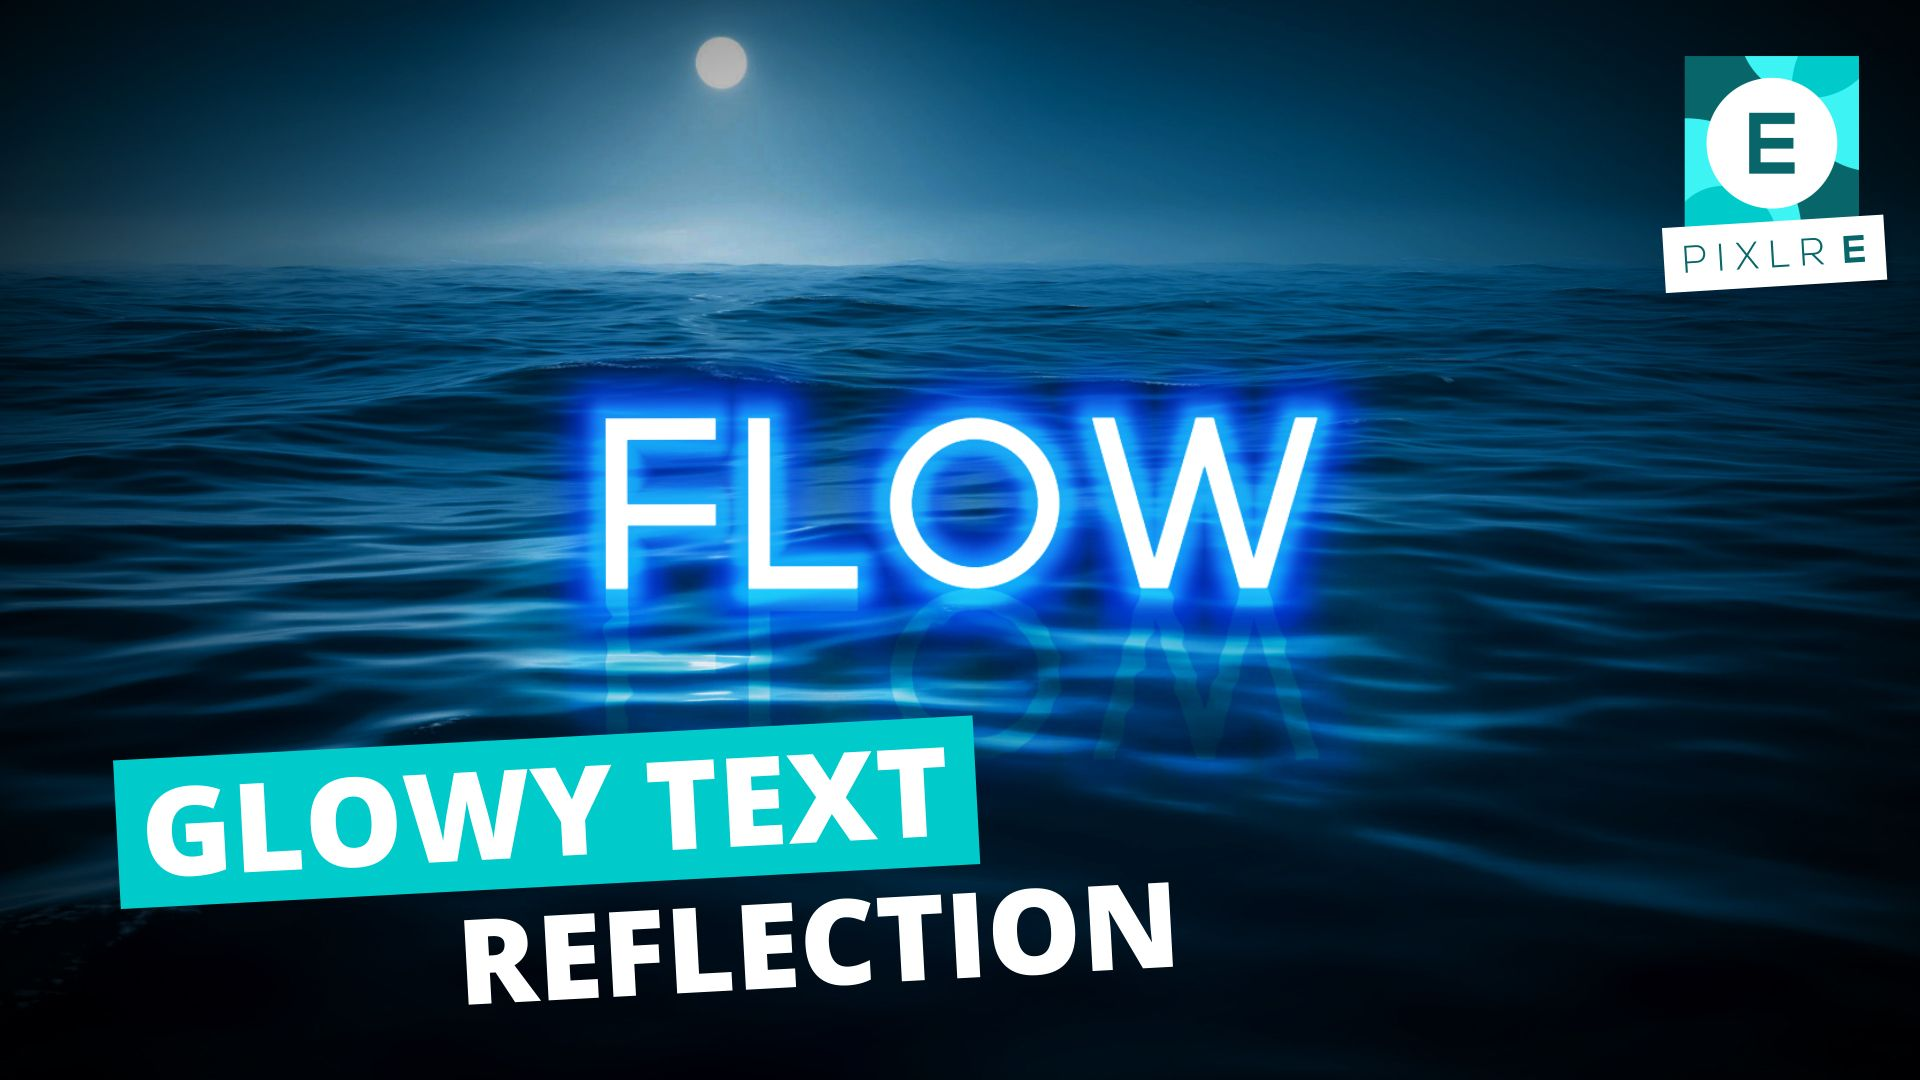 In this tutorial, we'll run you through how to recreate a glowing text reflection on water using Pixlr E.